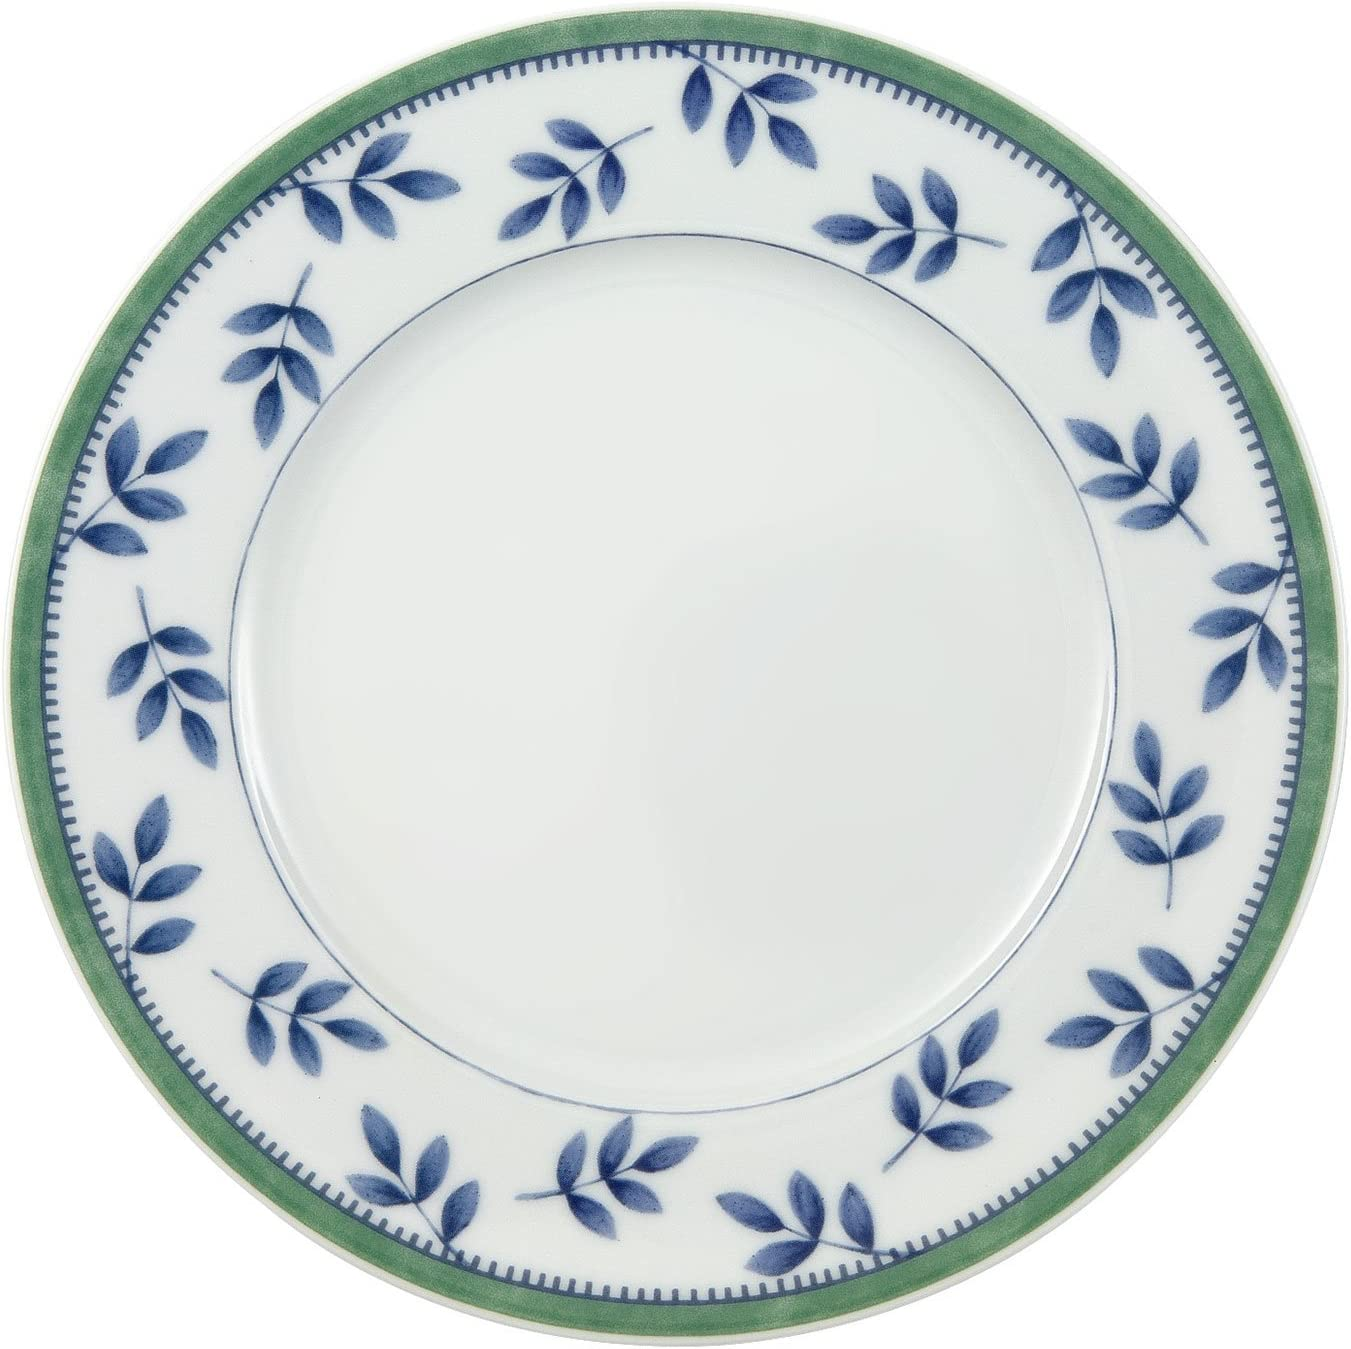 Villeroy /& Boch Switch 3 Corfu 18 cm Bread and Butter Plate